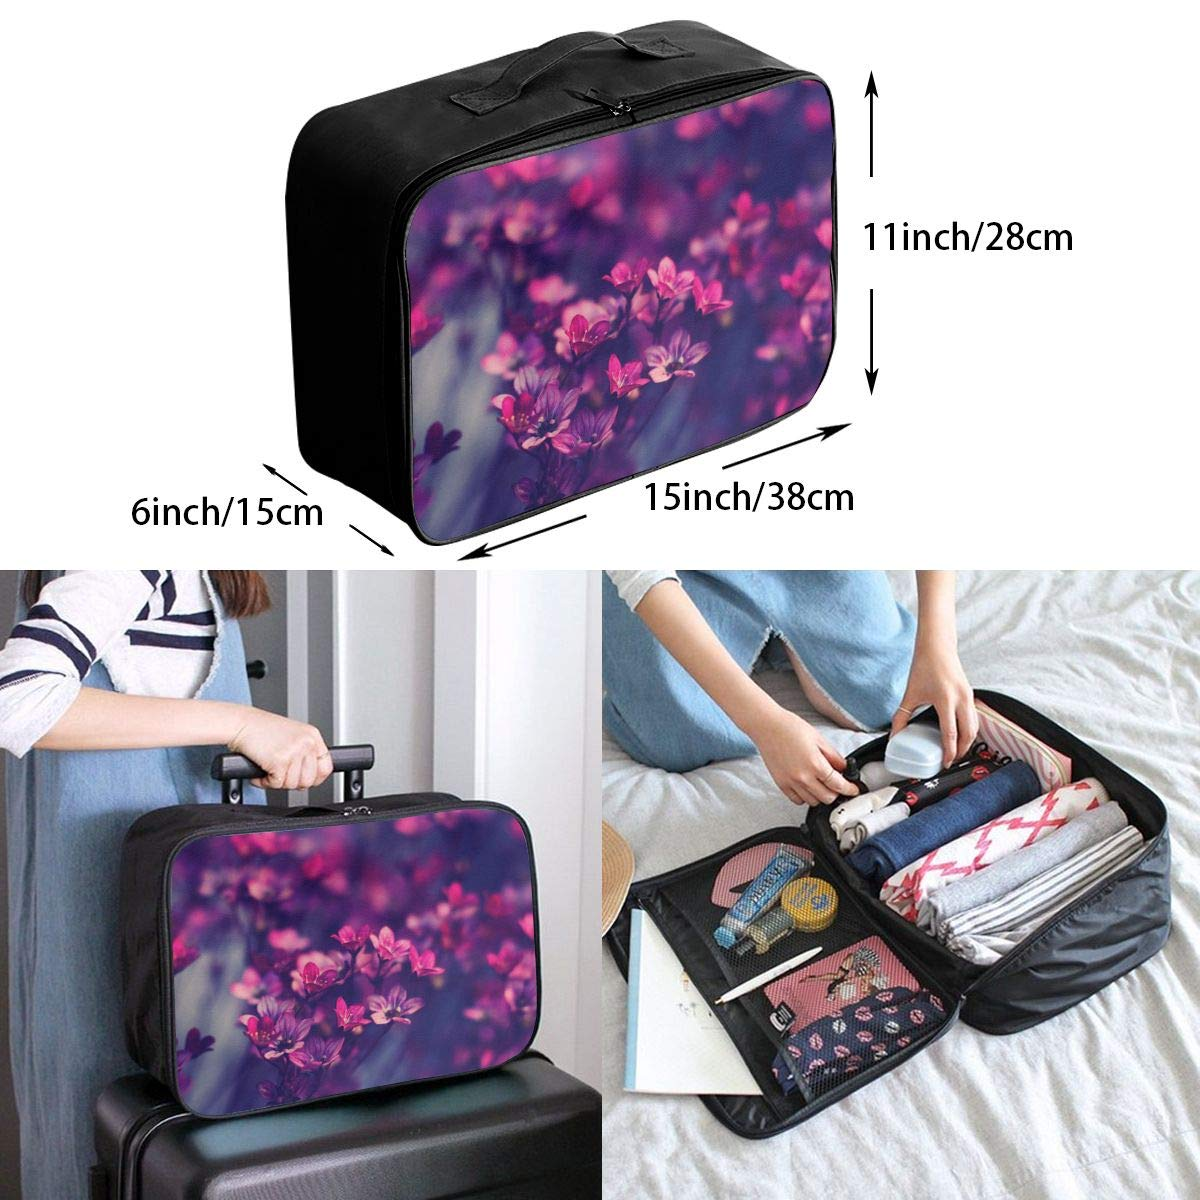 Travel Luggage Duffle Bag Lightweight Portable Handbag Red Flower Print Large Capacity Waterproof Foldable Storage Tote